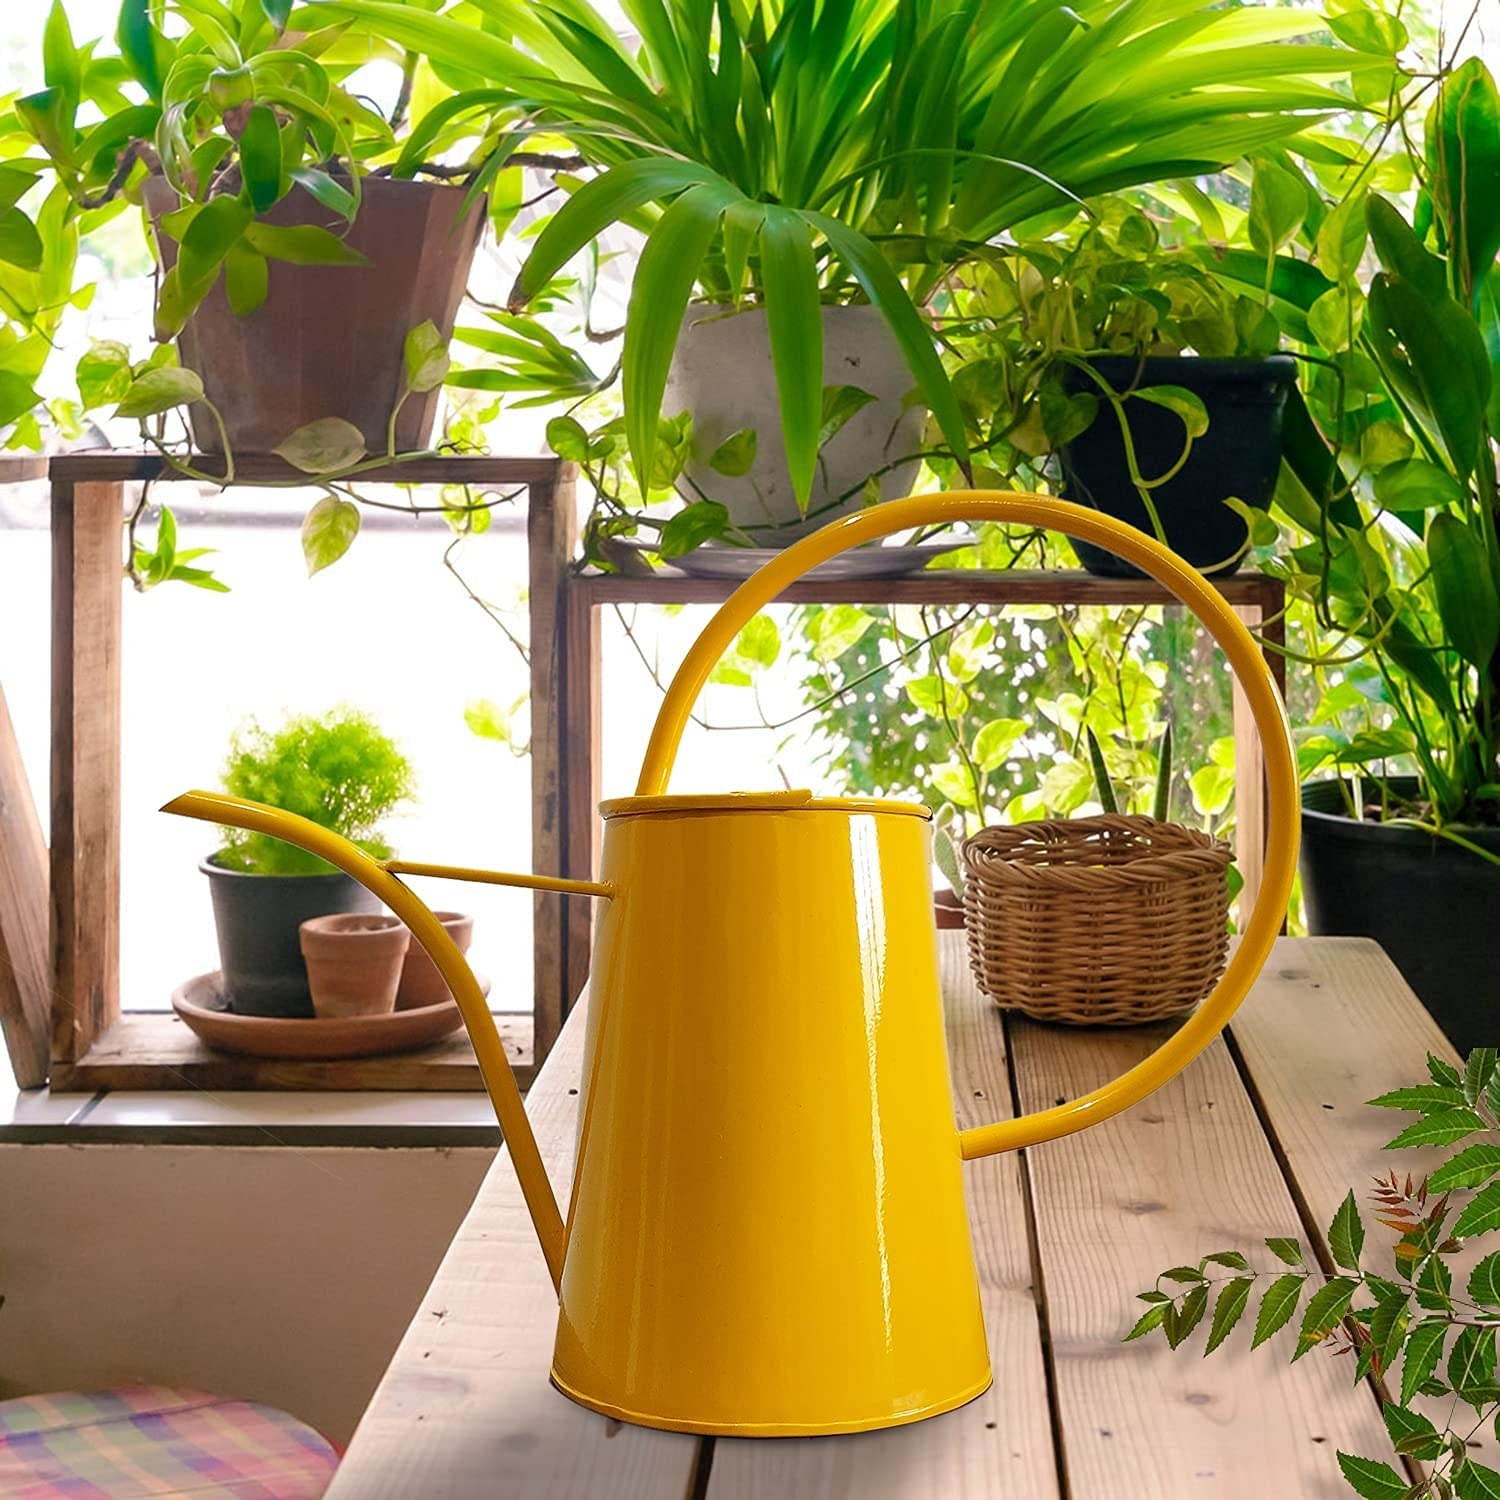 A yellow watering can.